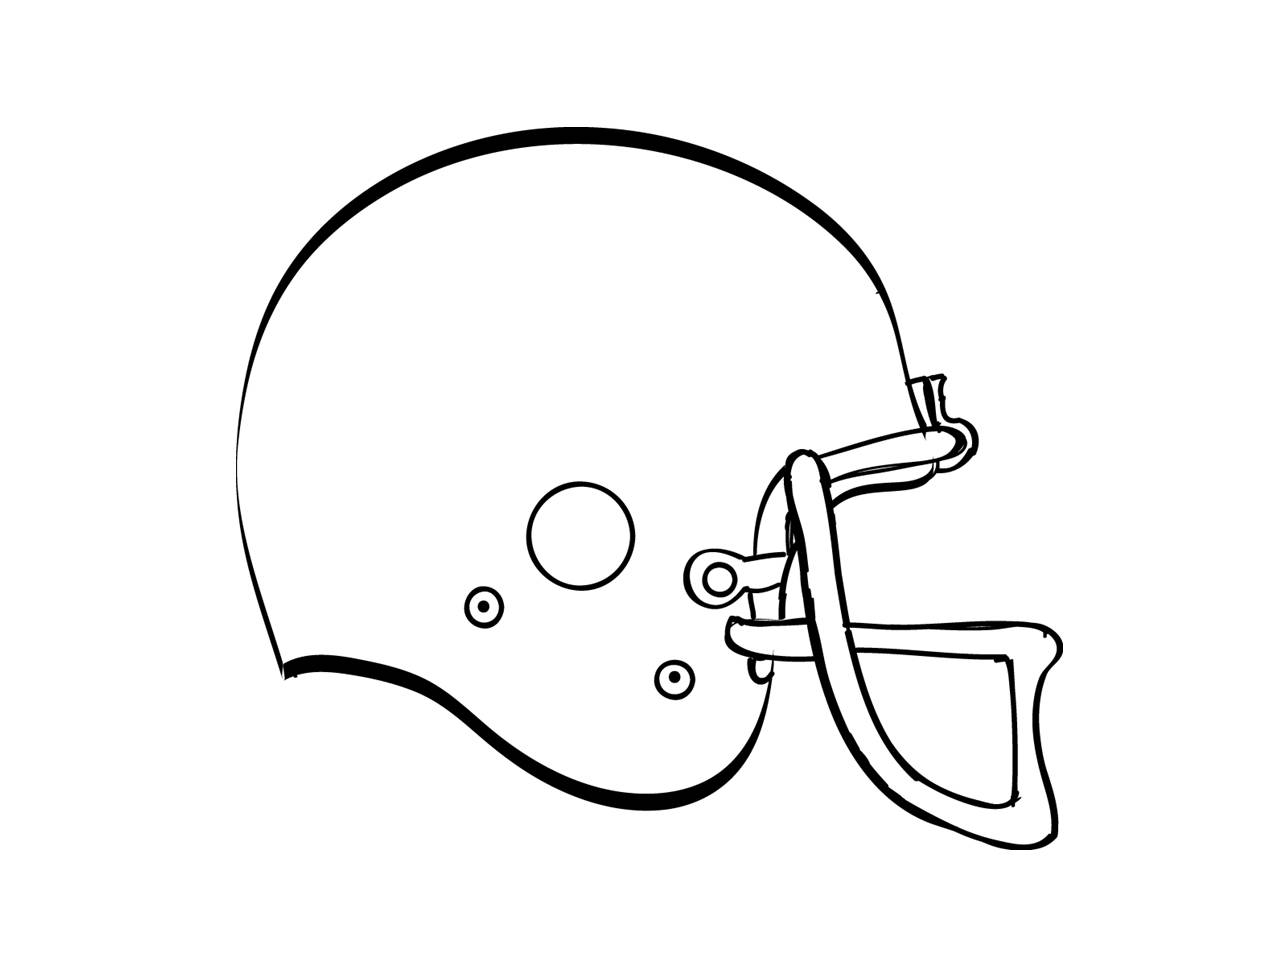 Clipart Football Helmet Black And White Free 2 Image